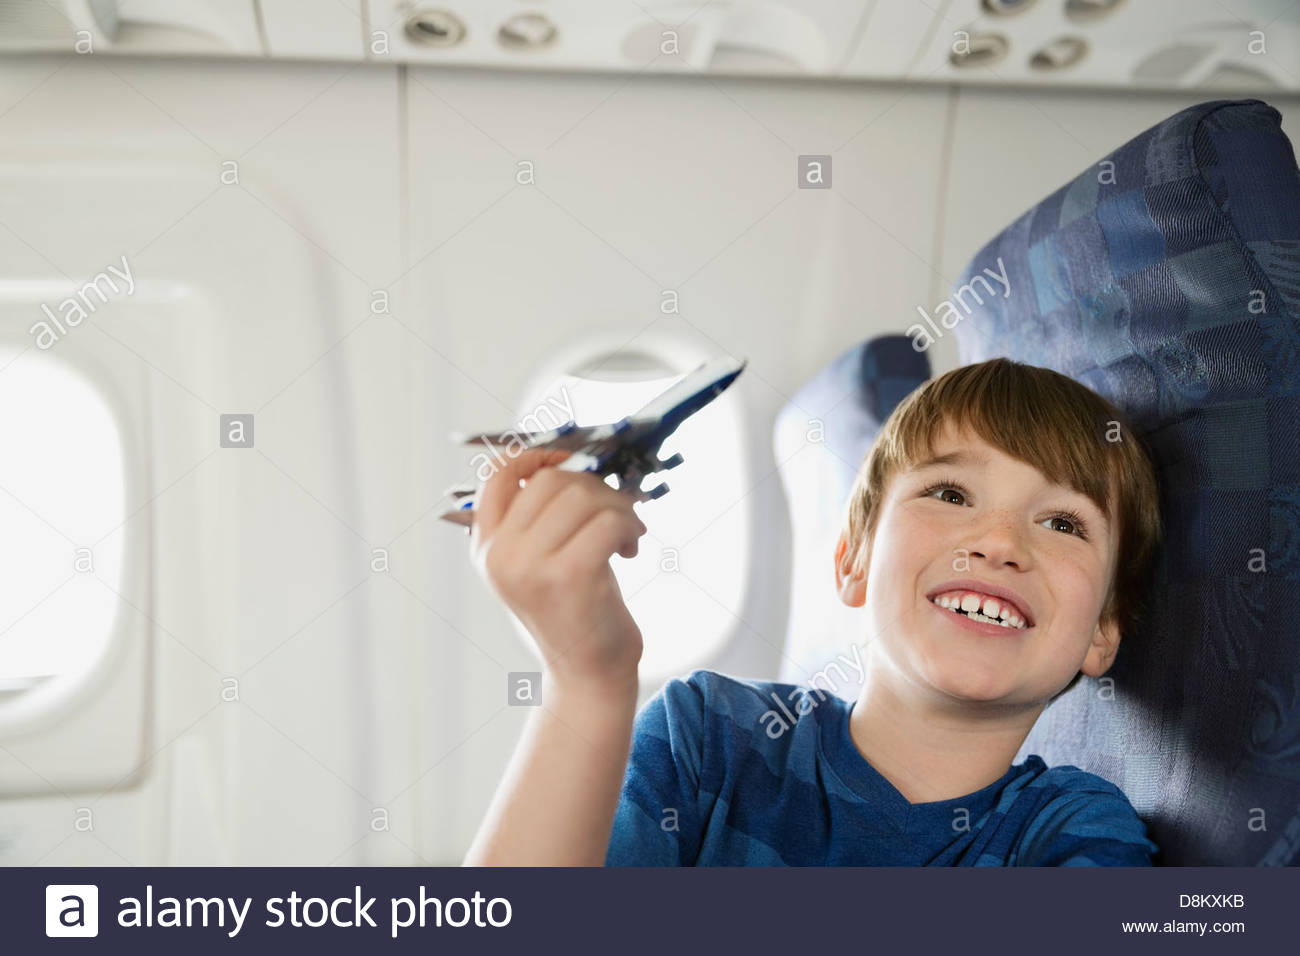 Boy playing with toy plane in airplane - Stock Image